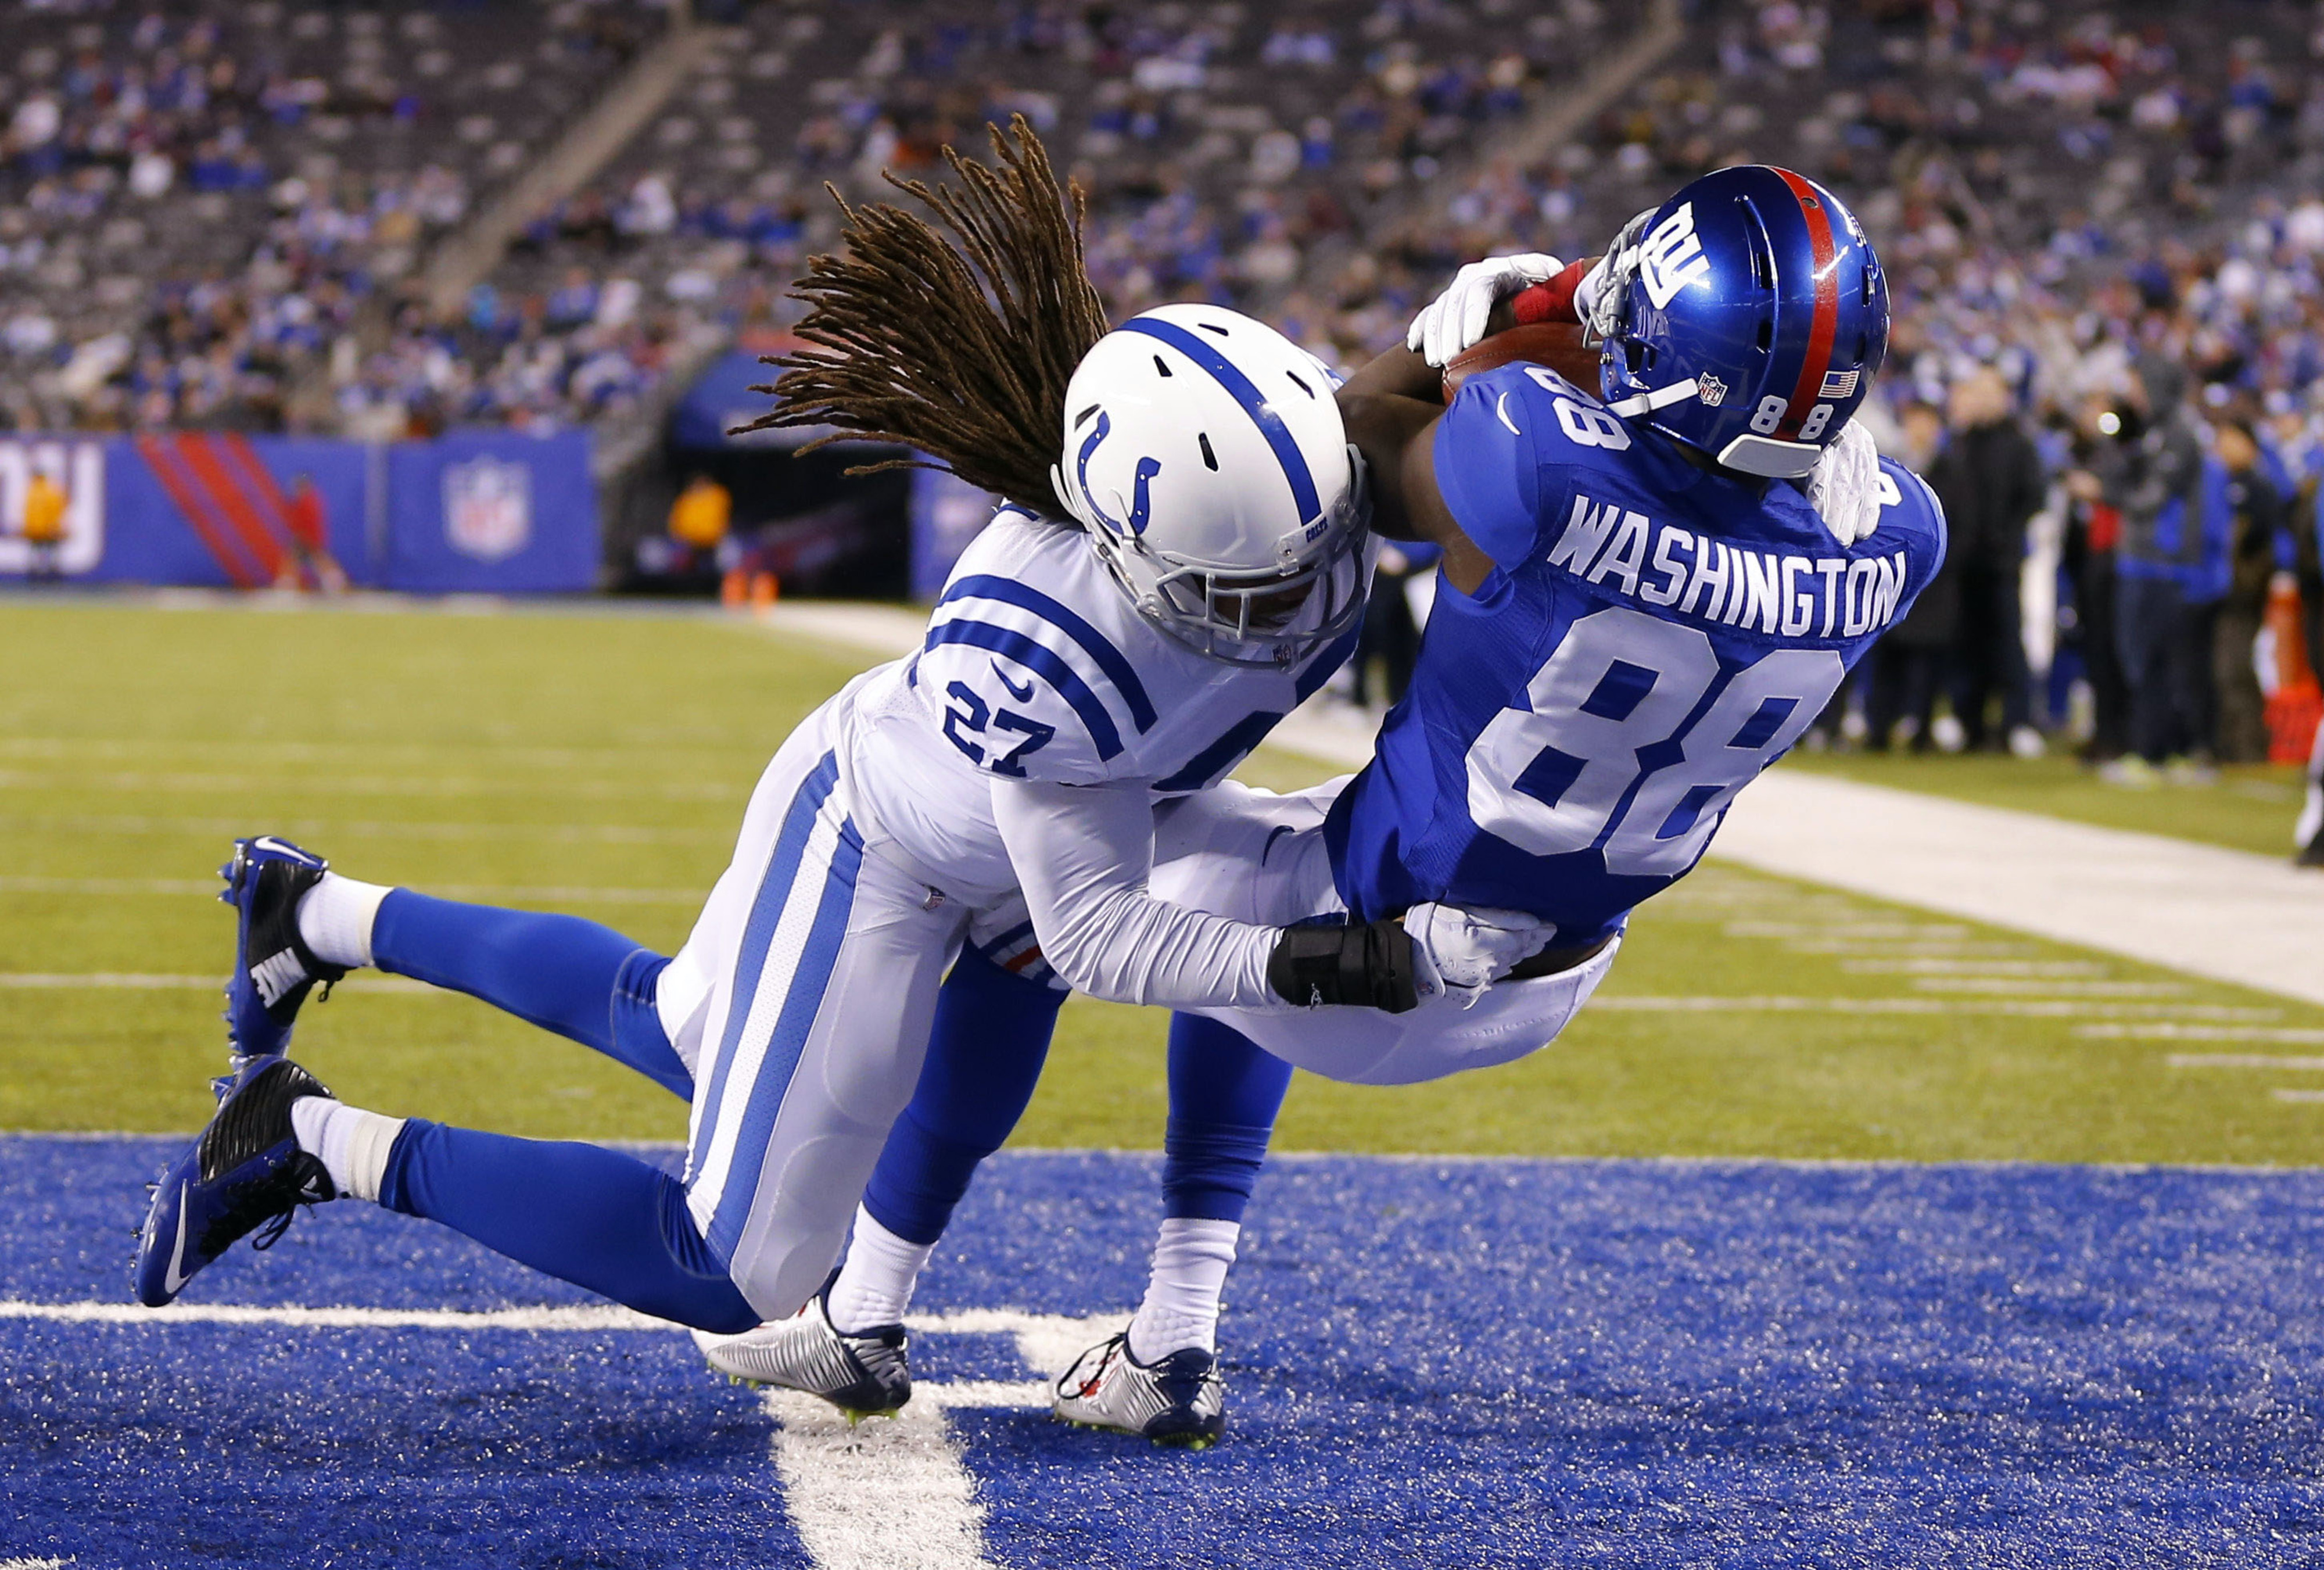 Corey Washington hauls in a touchdown pass against Indianapolis